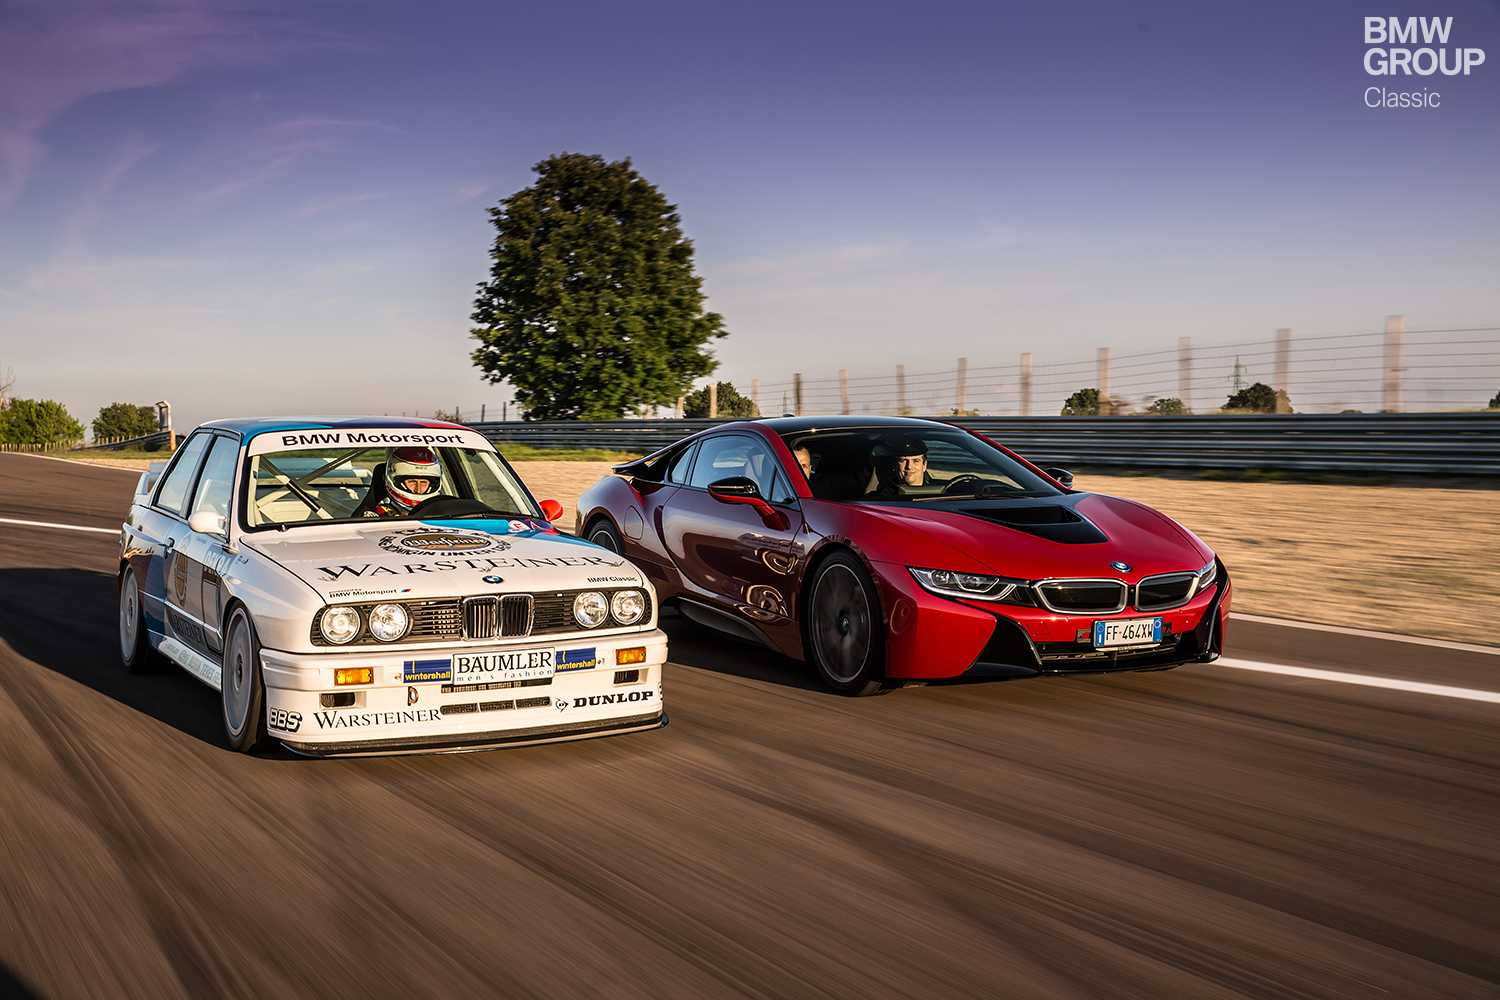 A Classic BMW M3 Goes Head To With The New I8 In An Enthralling Race At Vintage Day Modena Marco Zamponi